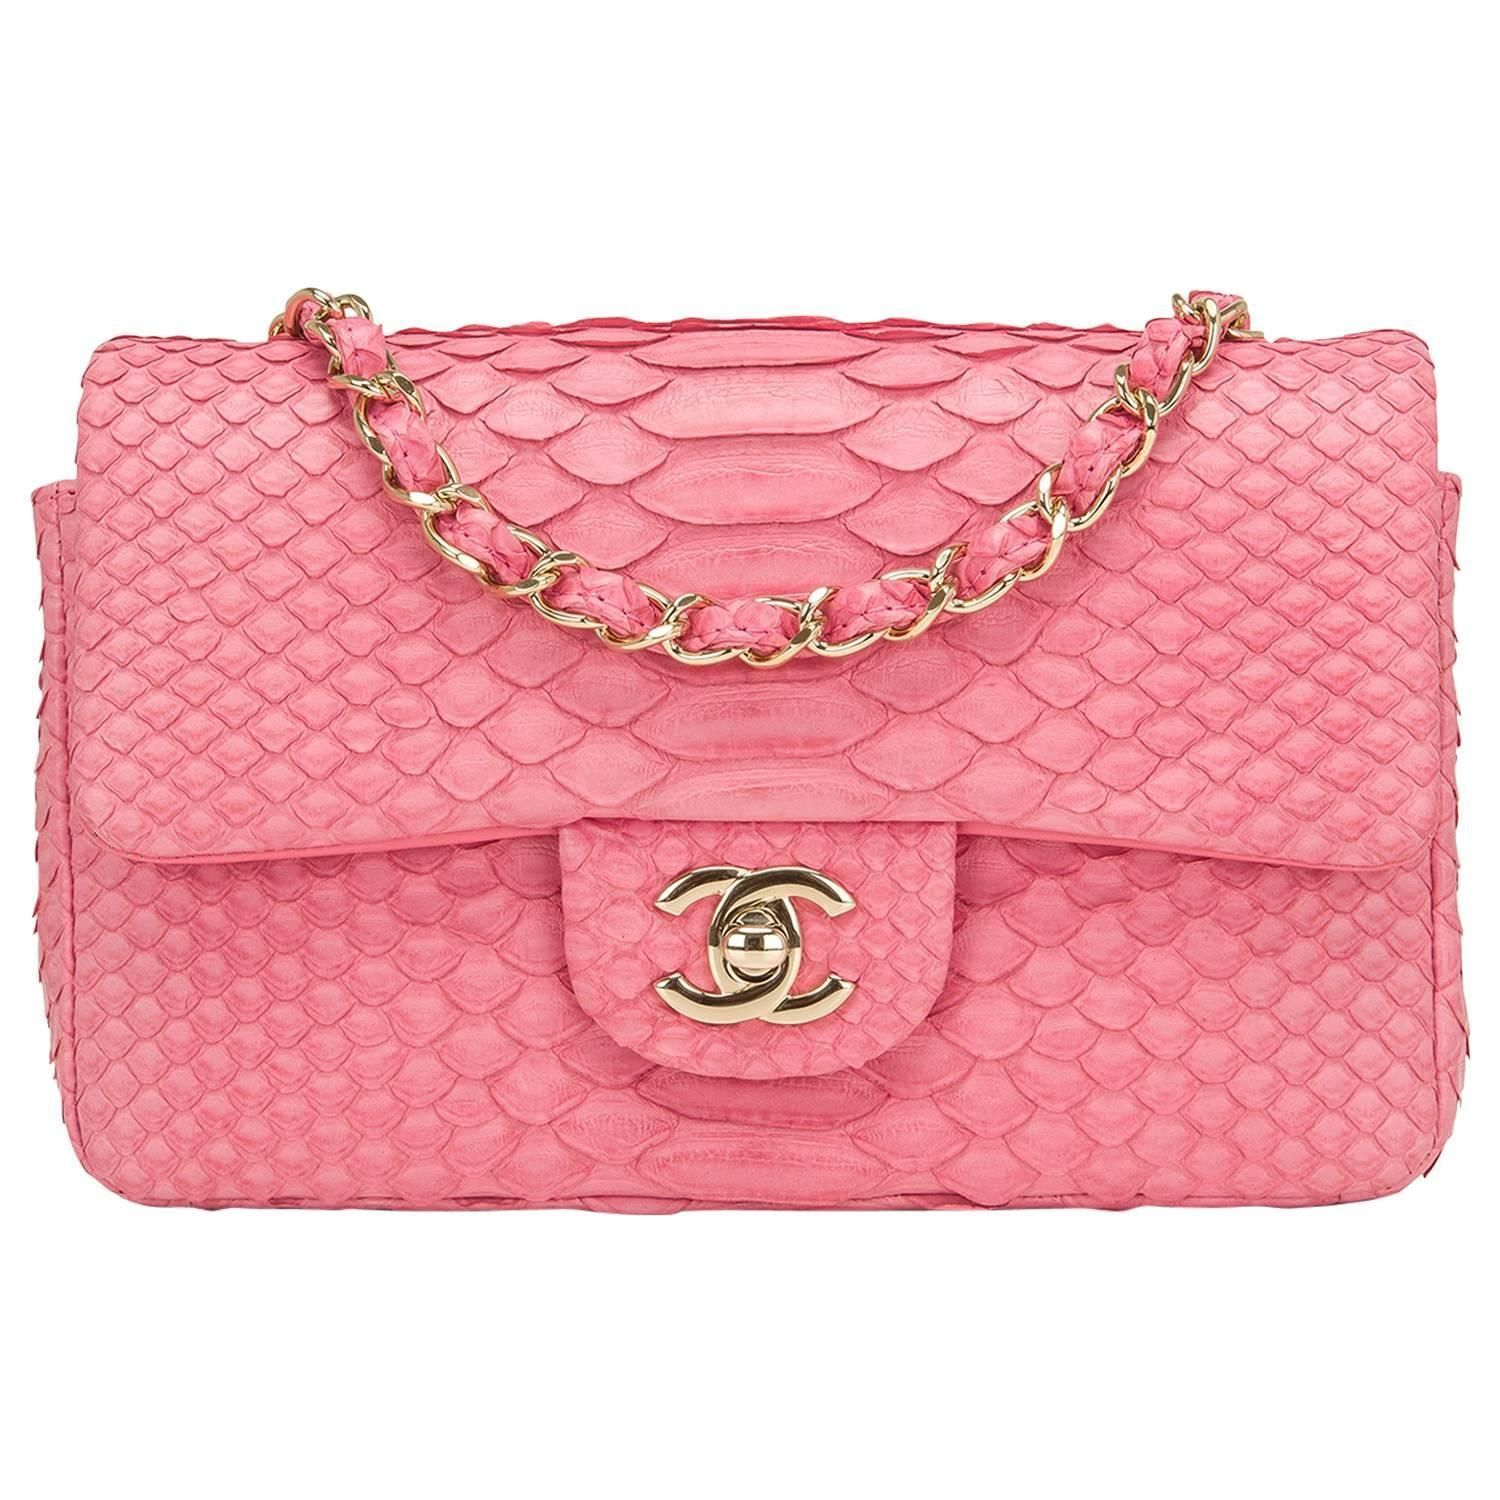 89e00931c5f Chanel Pink Python Rectangular Mini Classic Flap Bag in 2018 ...